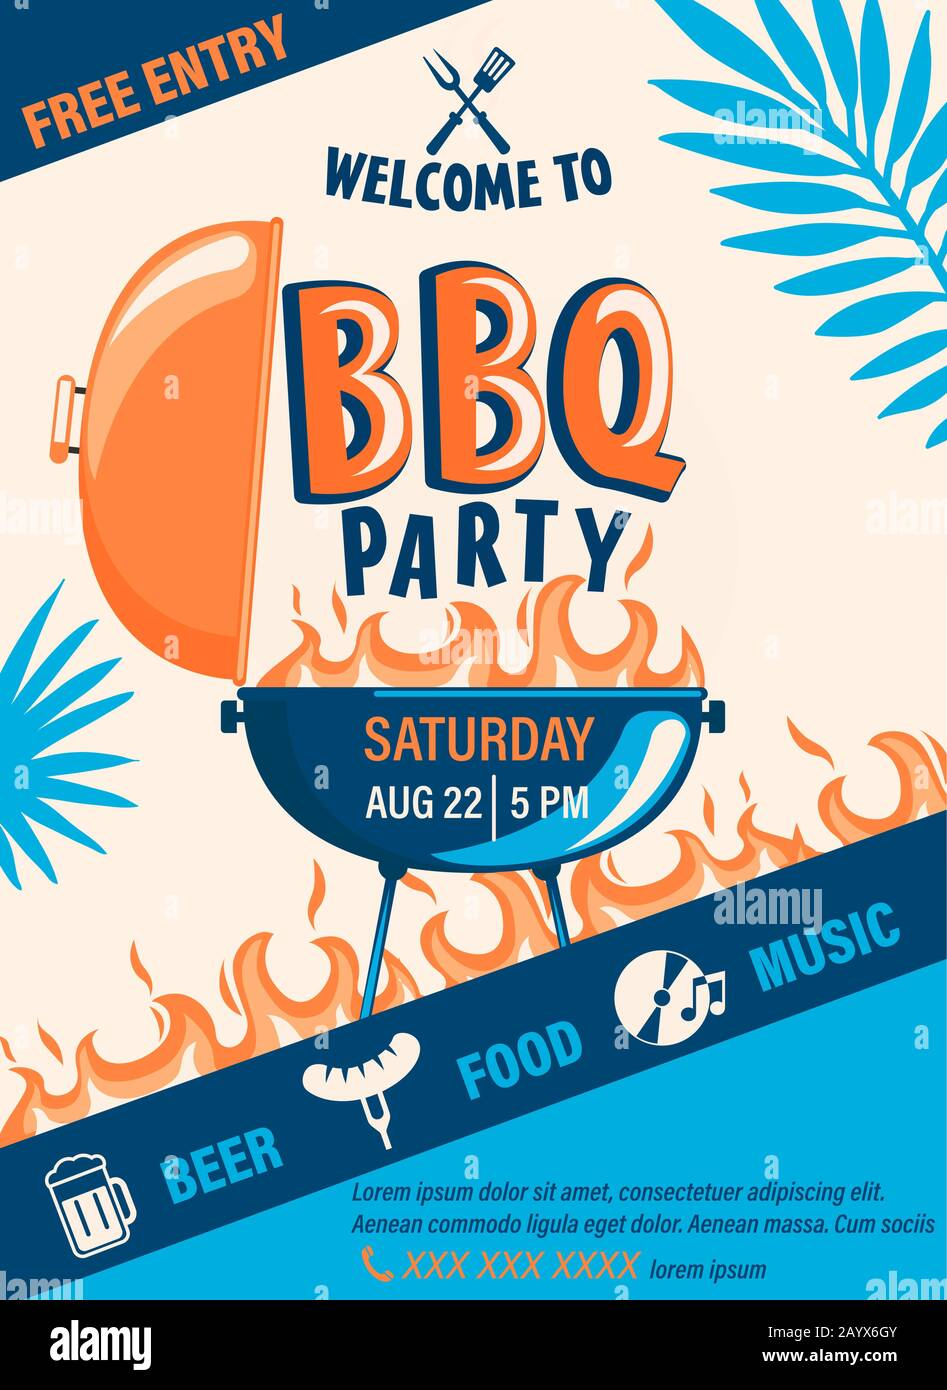 Welcome BBQ party flyer. Stock Vector